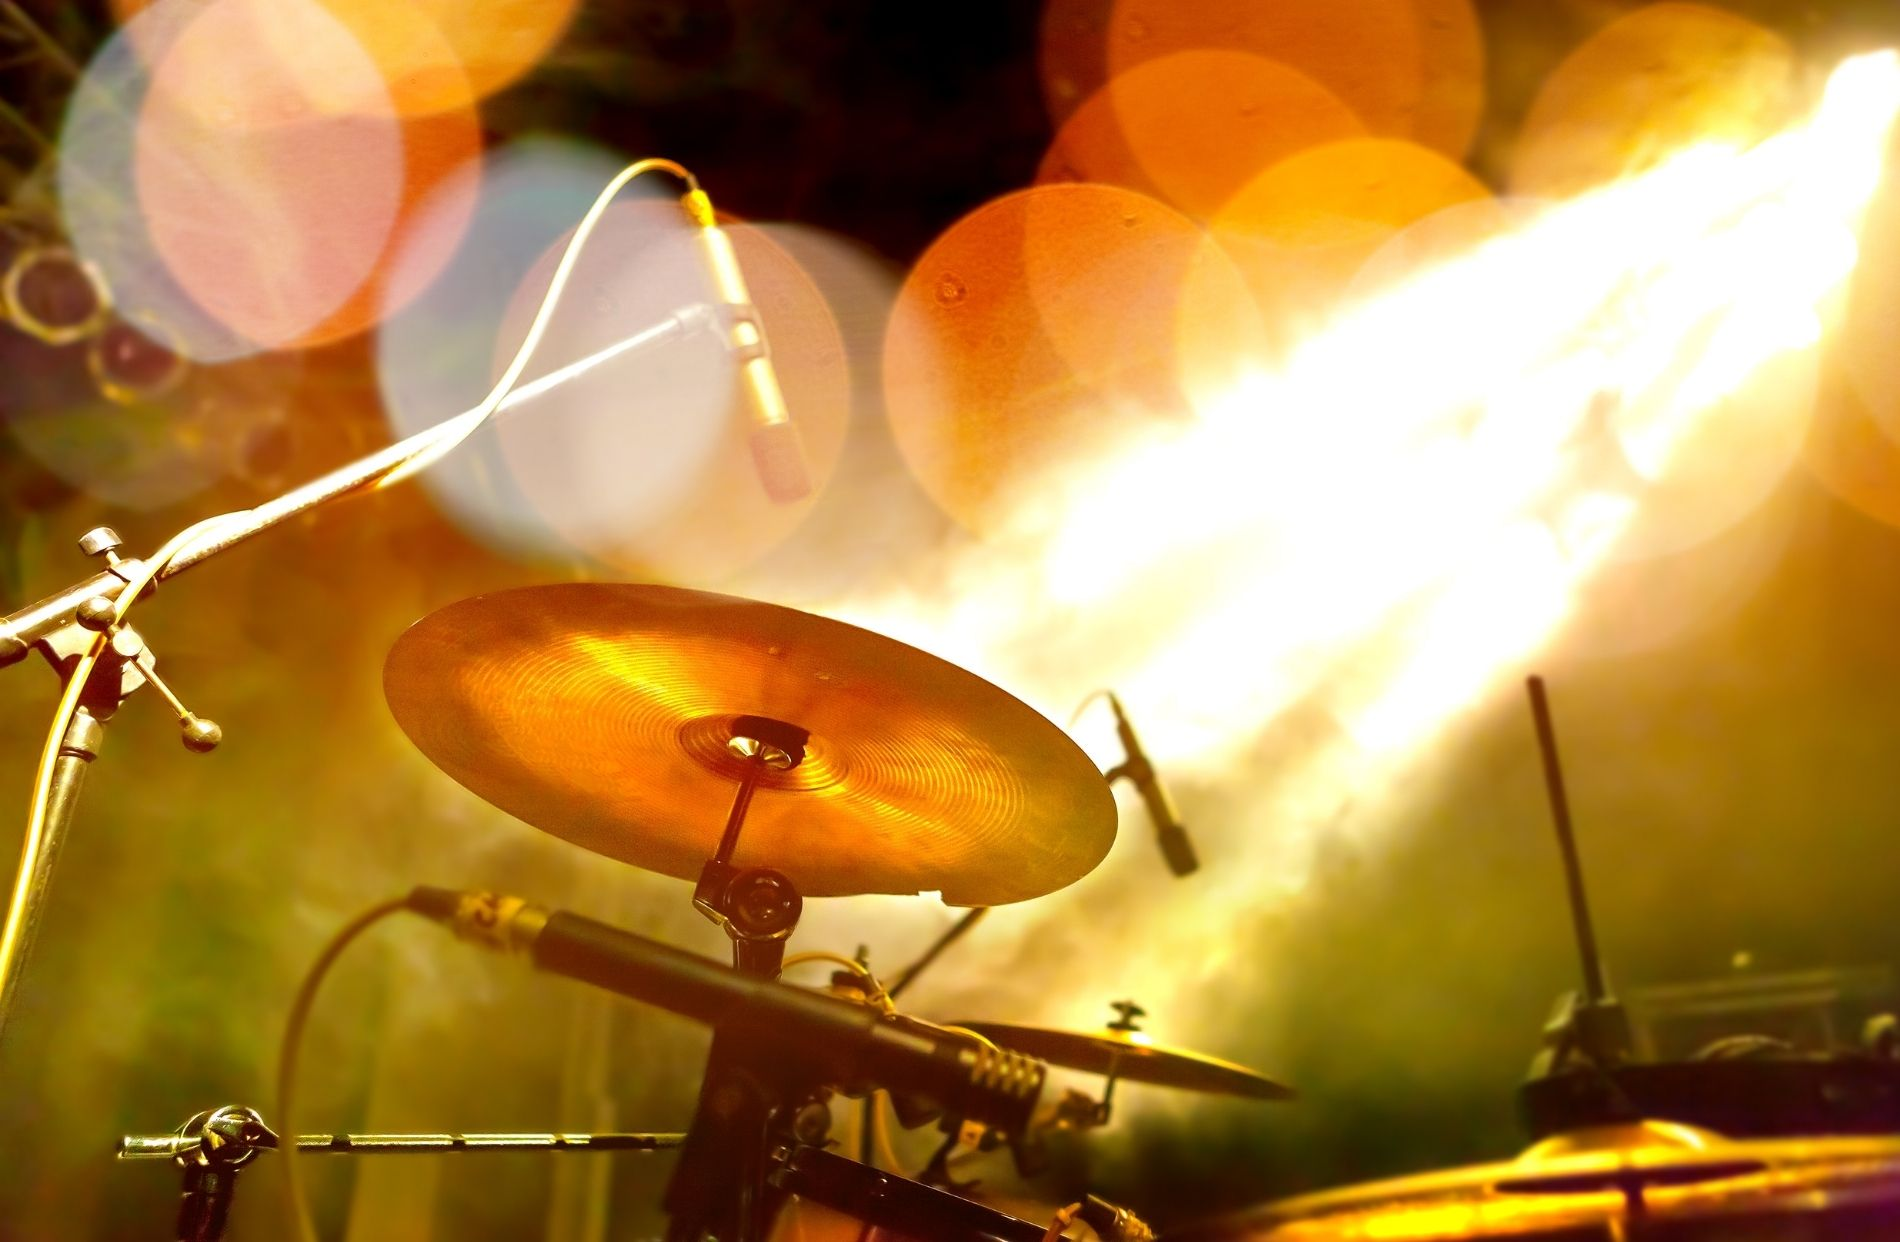 Drum set on a stage surrounded by lights